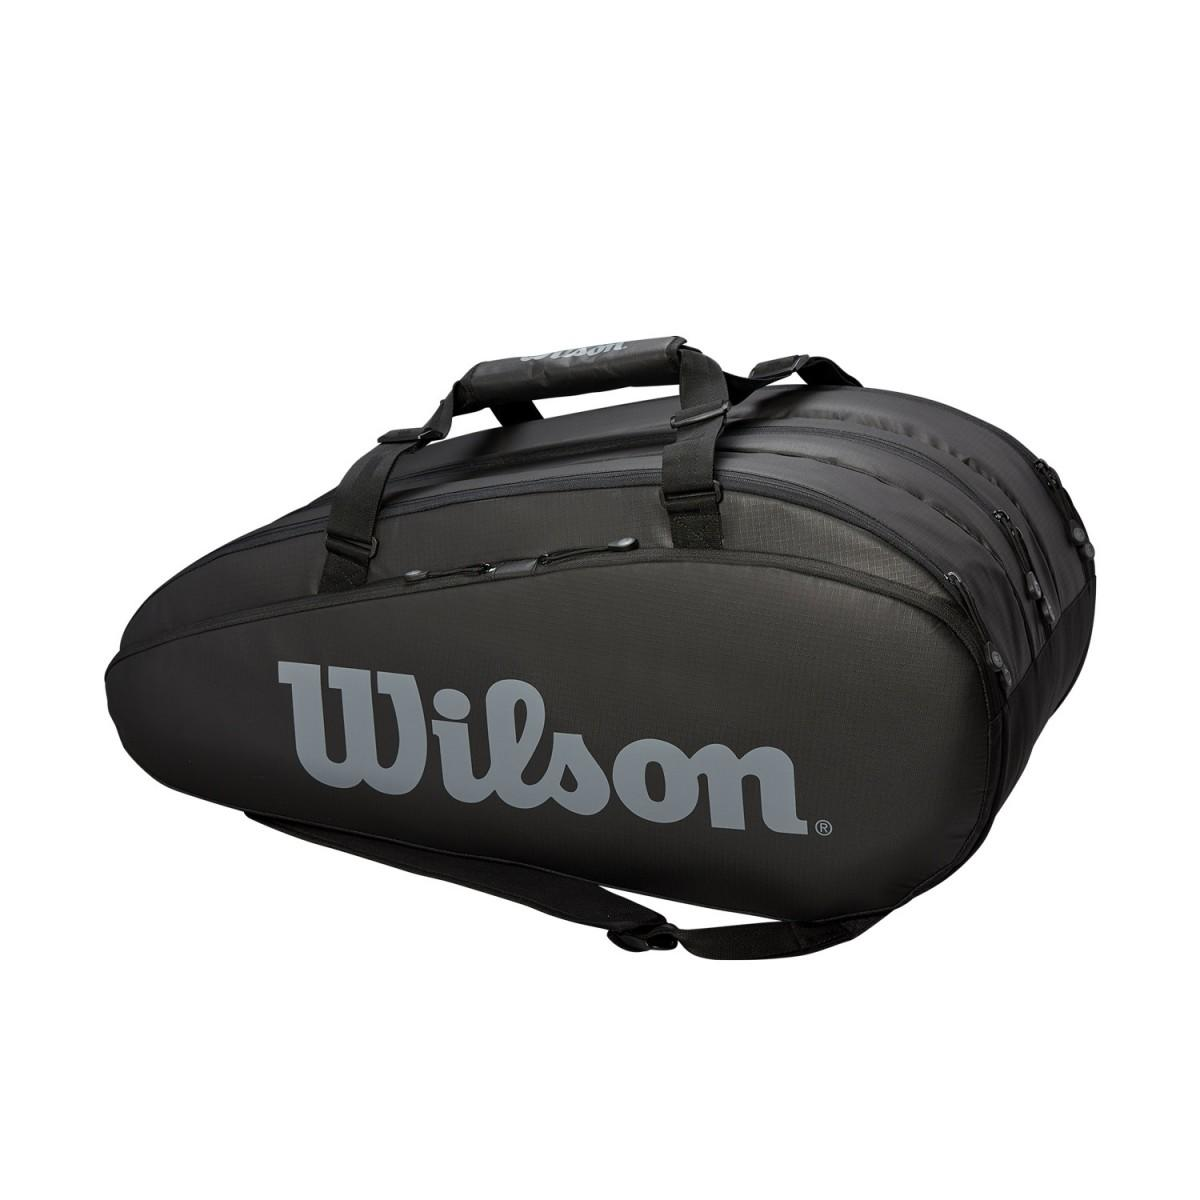 Теннисная сумка Wilson Tour 3 Comp 15 Pk black/grey